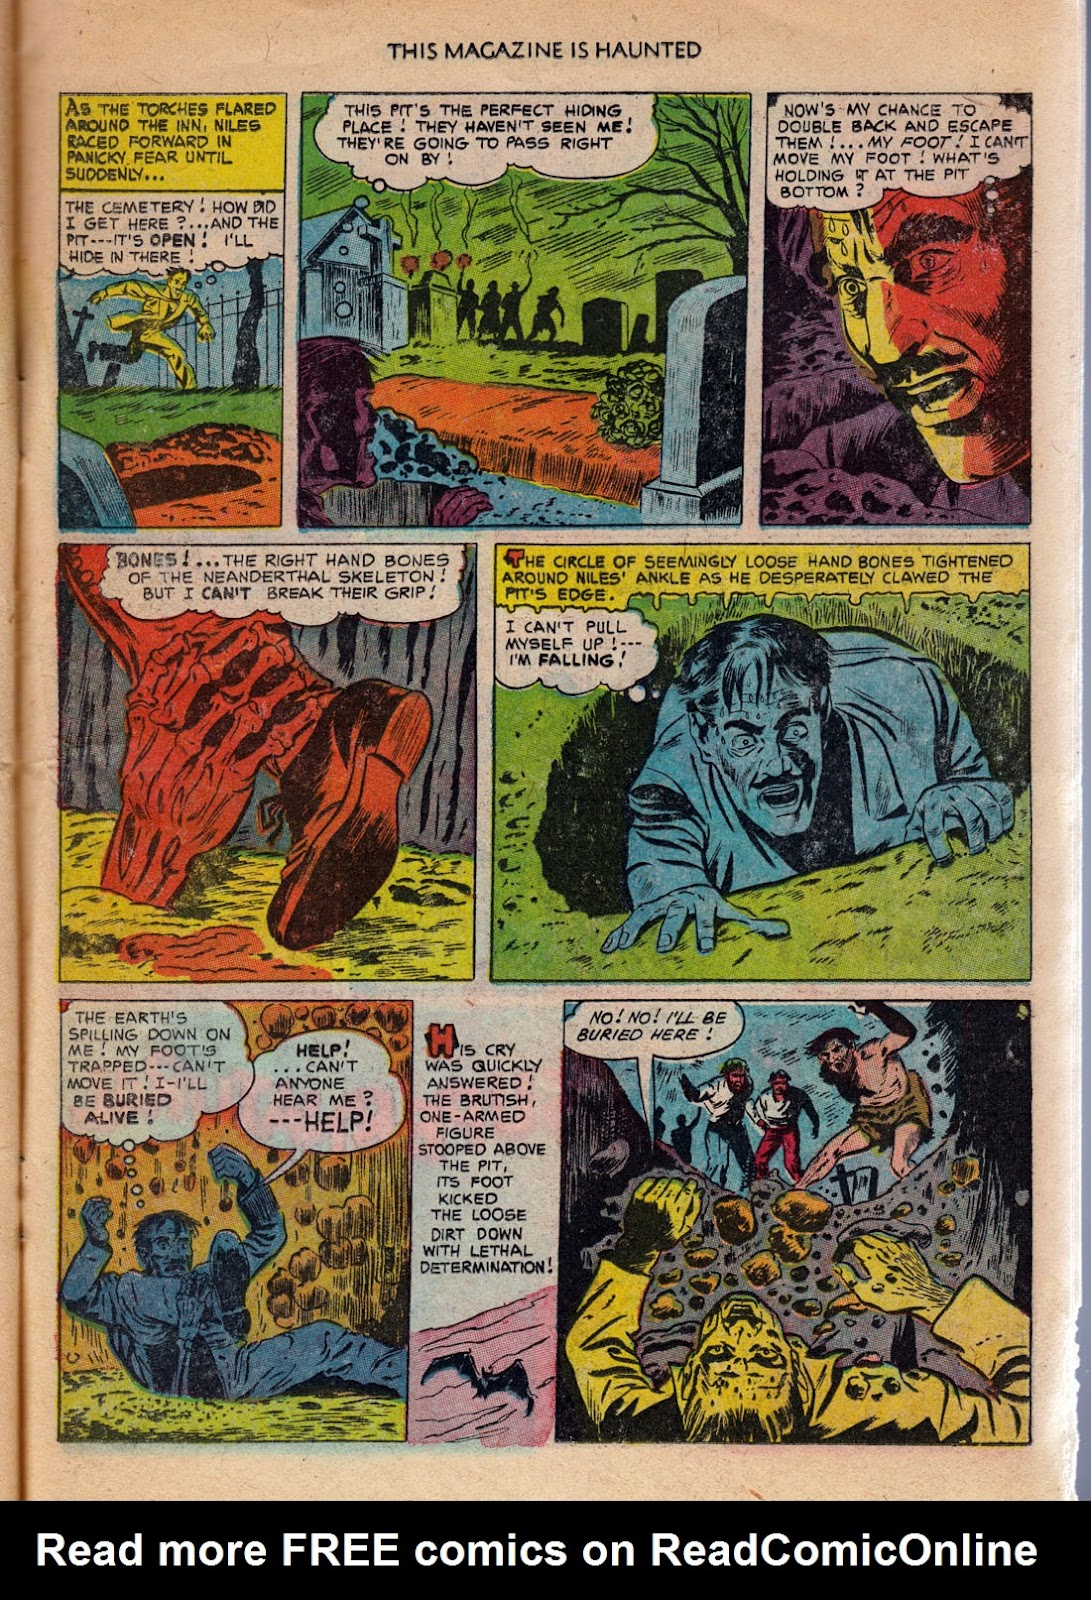 Read online This Magazine Is Haunted comic -  Issue #10 - 11